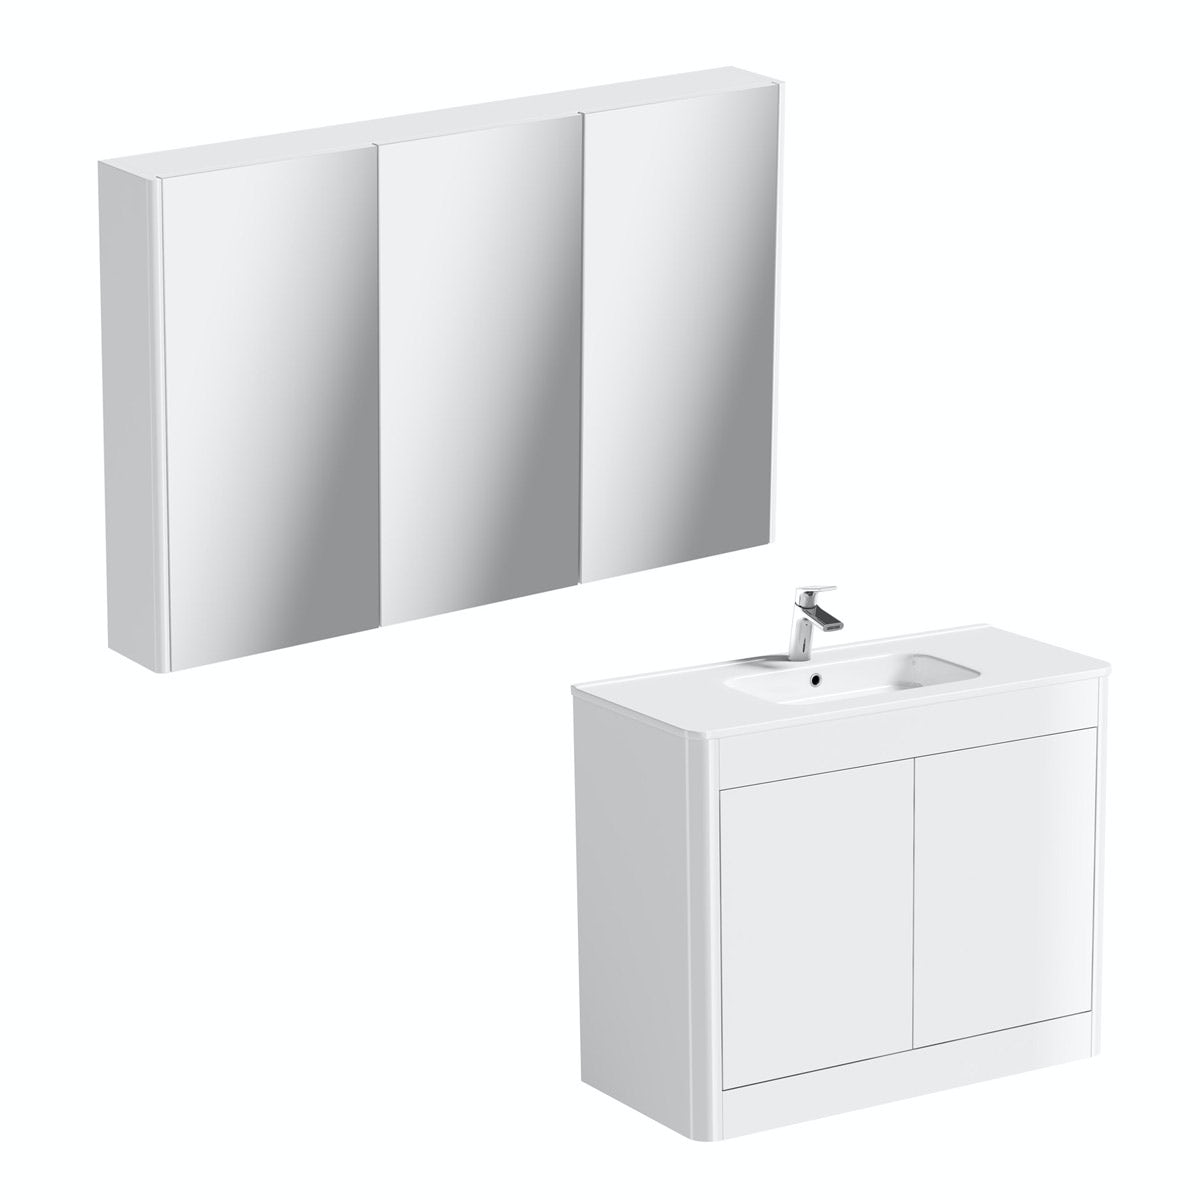 Mode Carter ice white vanity unit 1000mm and mirror